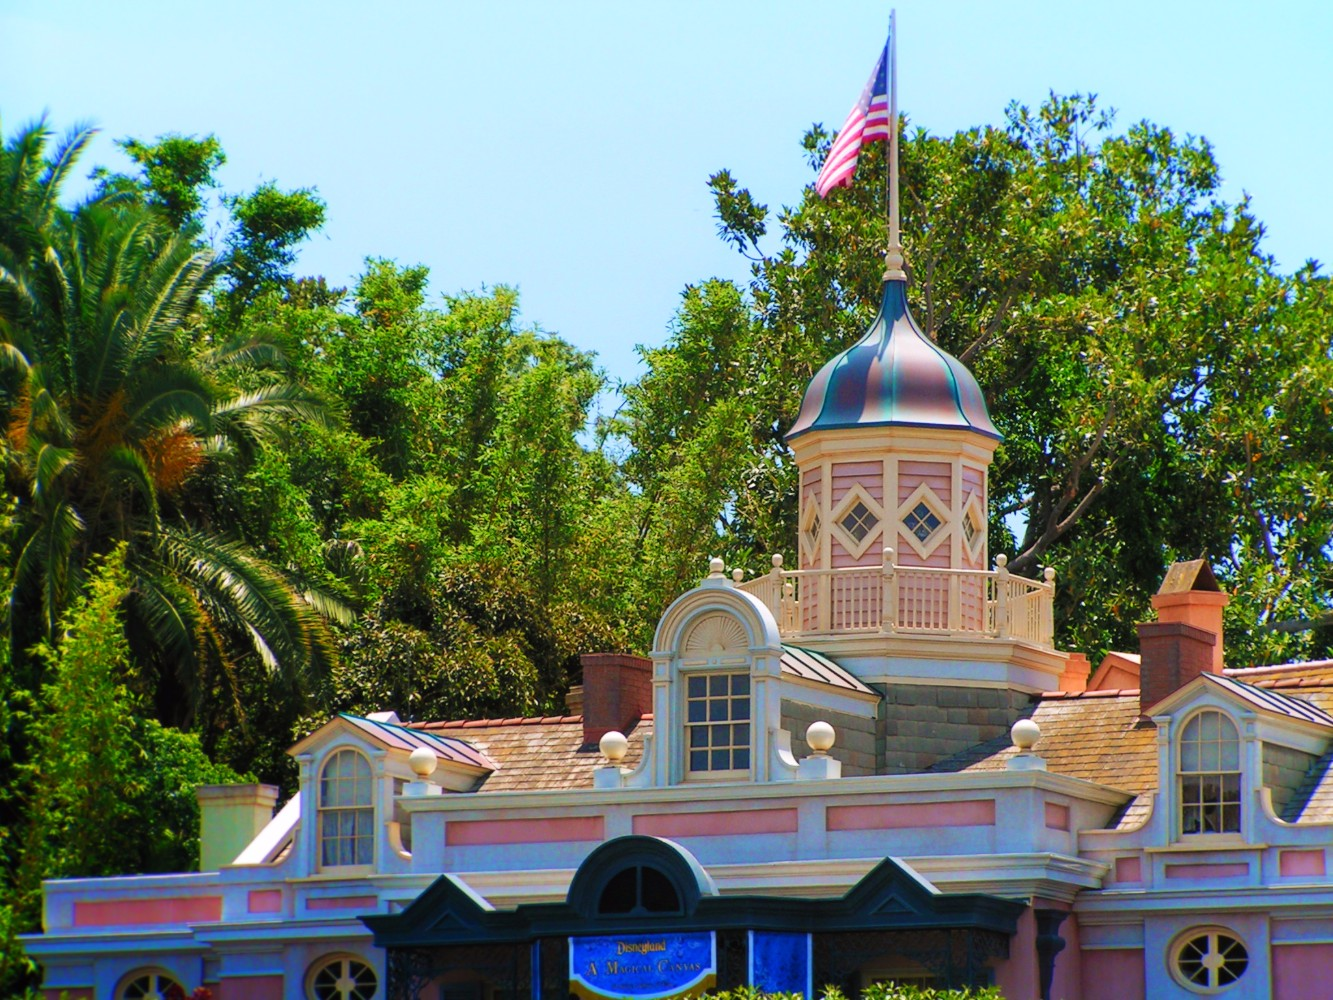 New Orleans Square from Tarzans Treehouse Adventureland Disneyland 2